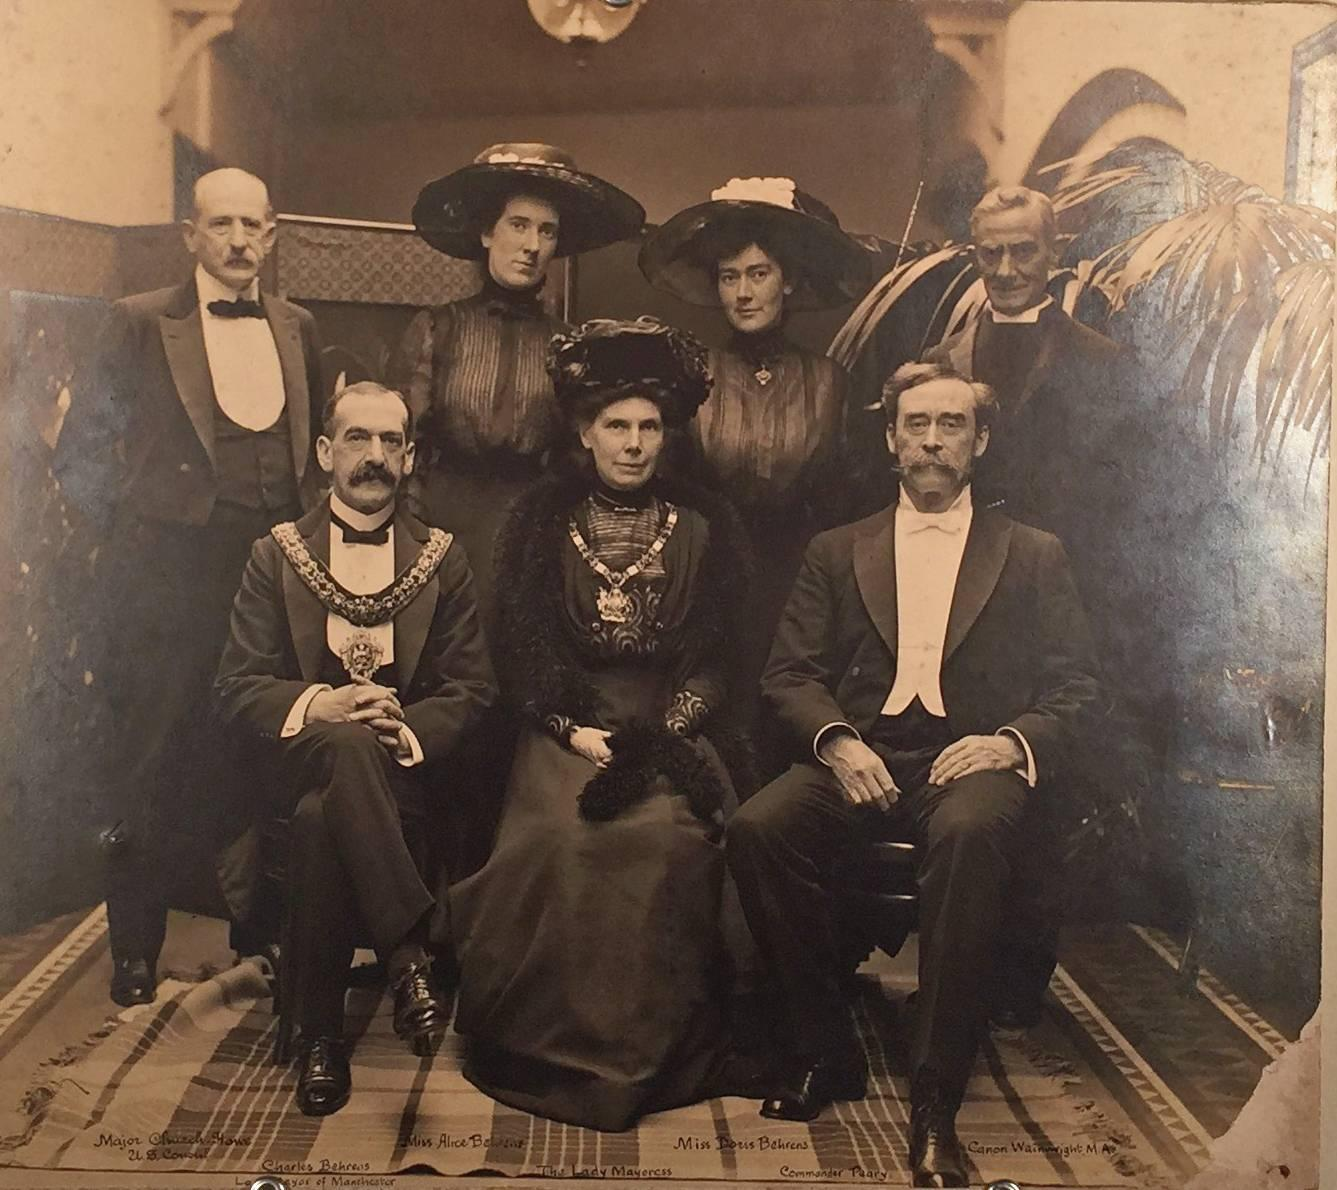 ROBERT PEARY, THE LORD MAYOR OF MANCHESTER, ENGLAND AND OTHERS.